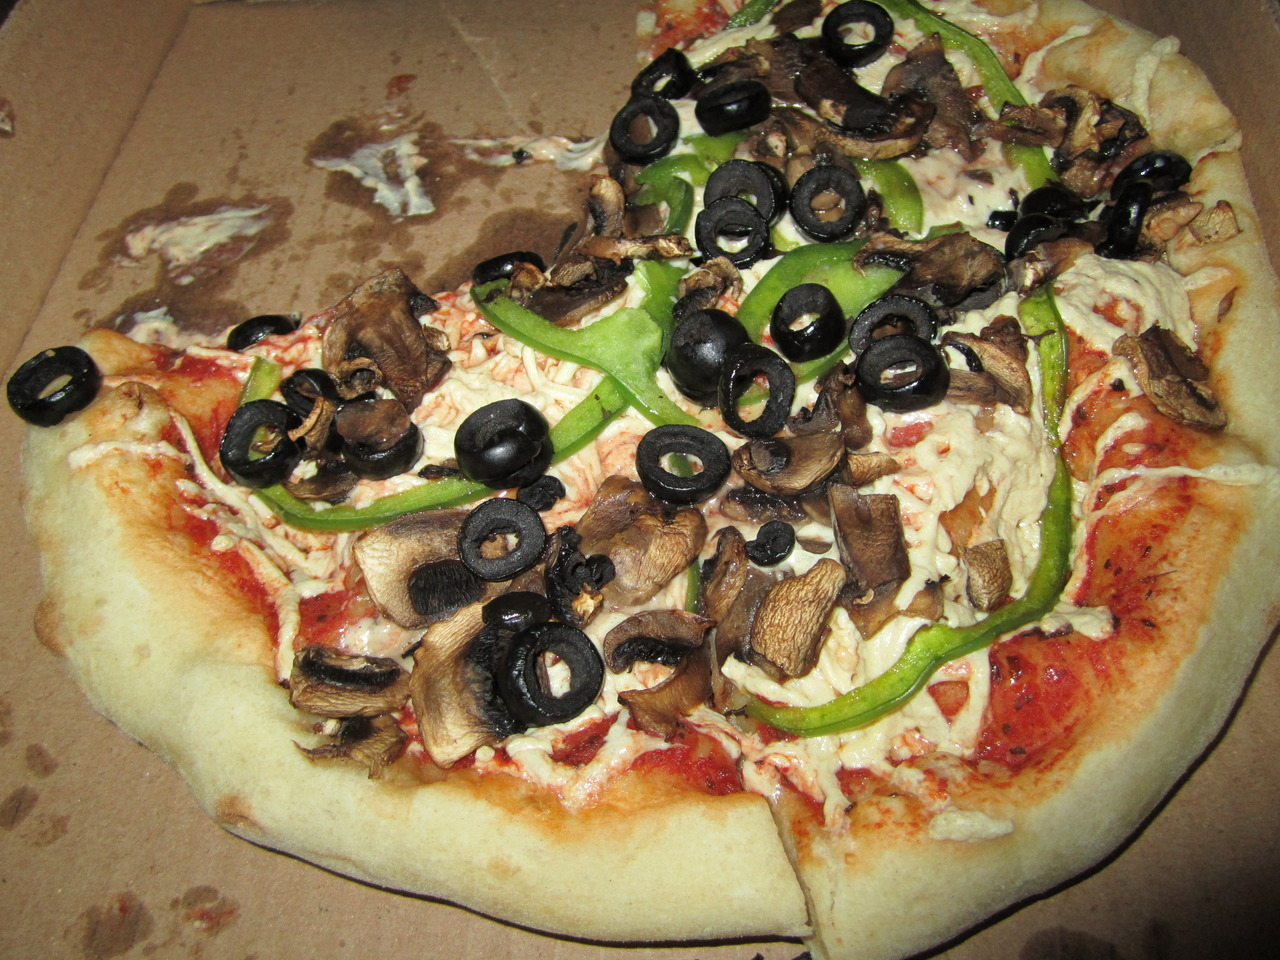 xyli:  Personal vegan pizza with olives, mushrooms and bell peppers from Unique Pizza West Covina